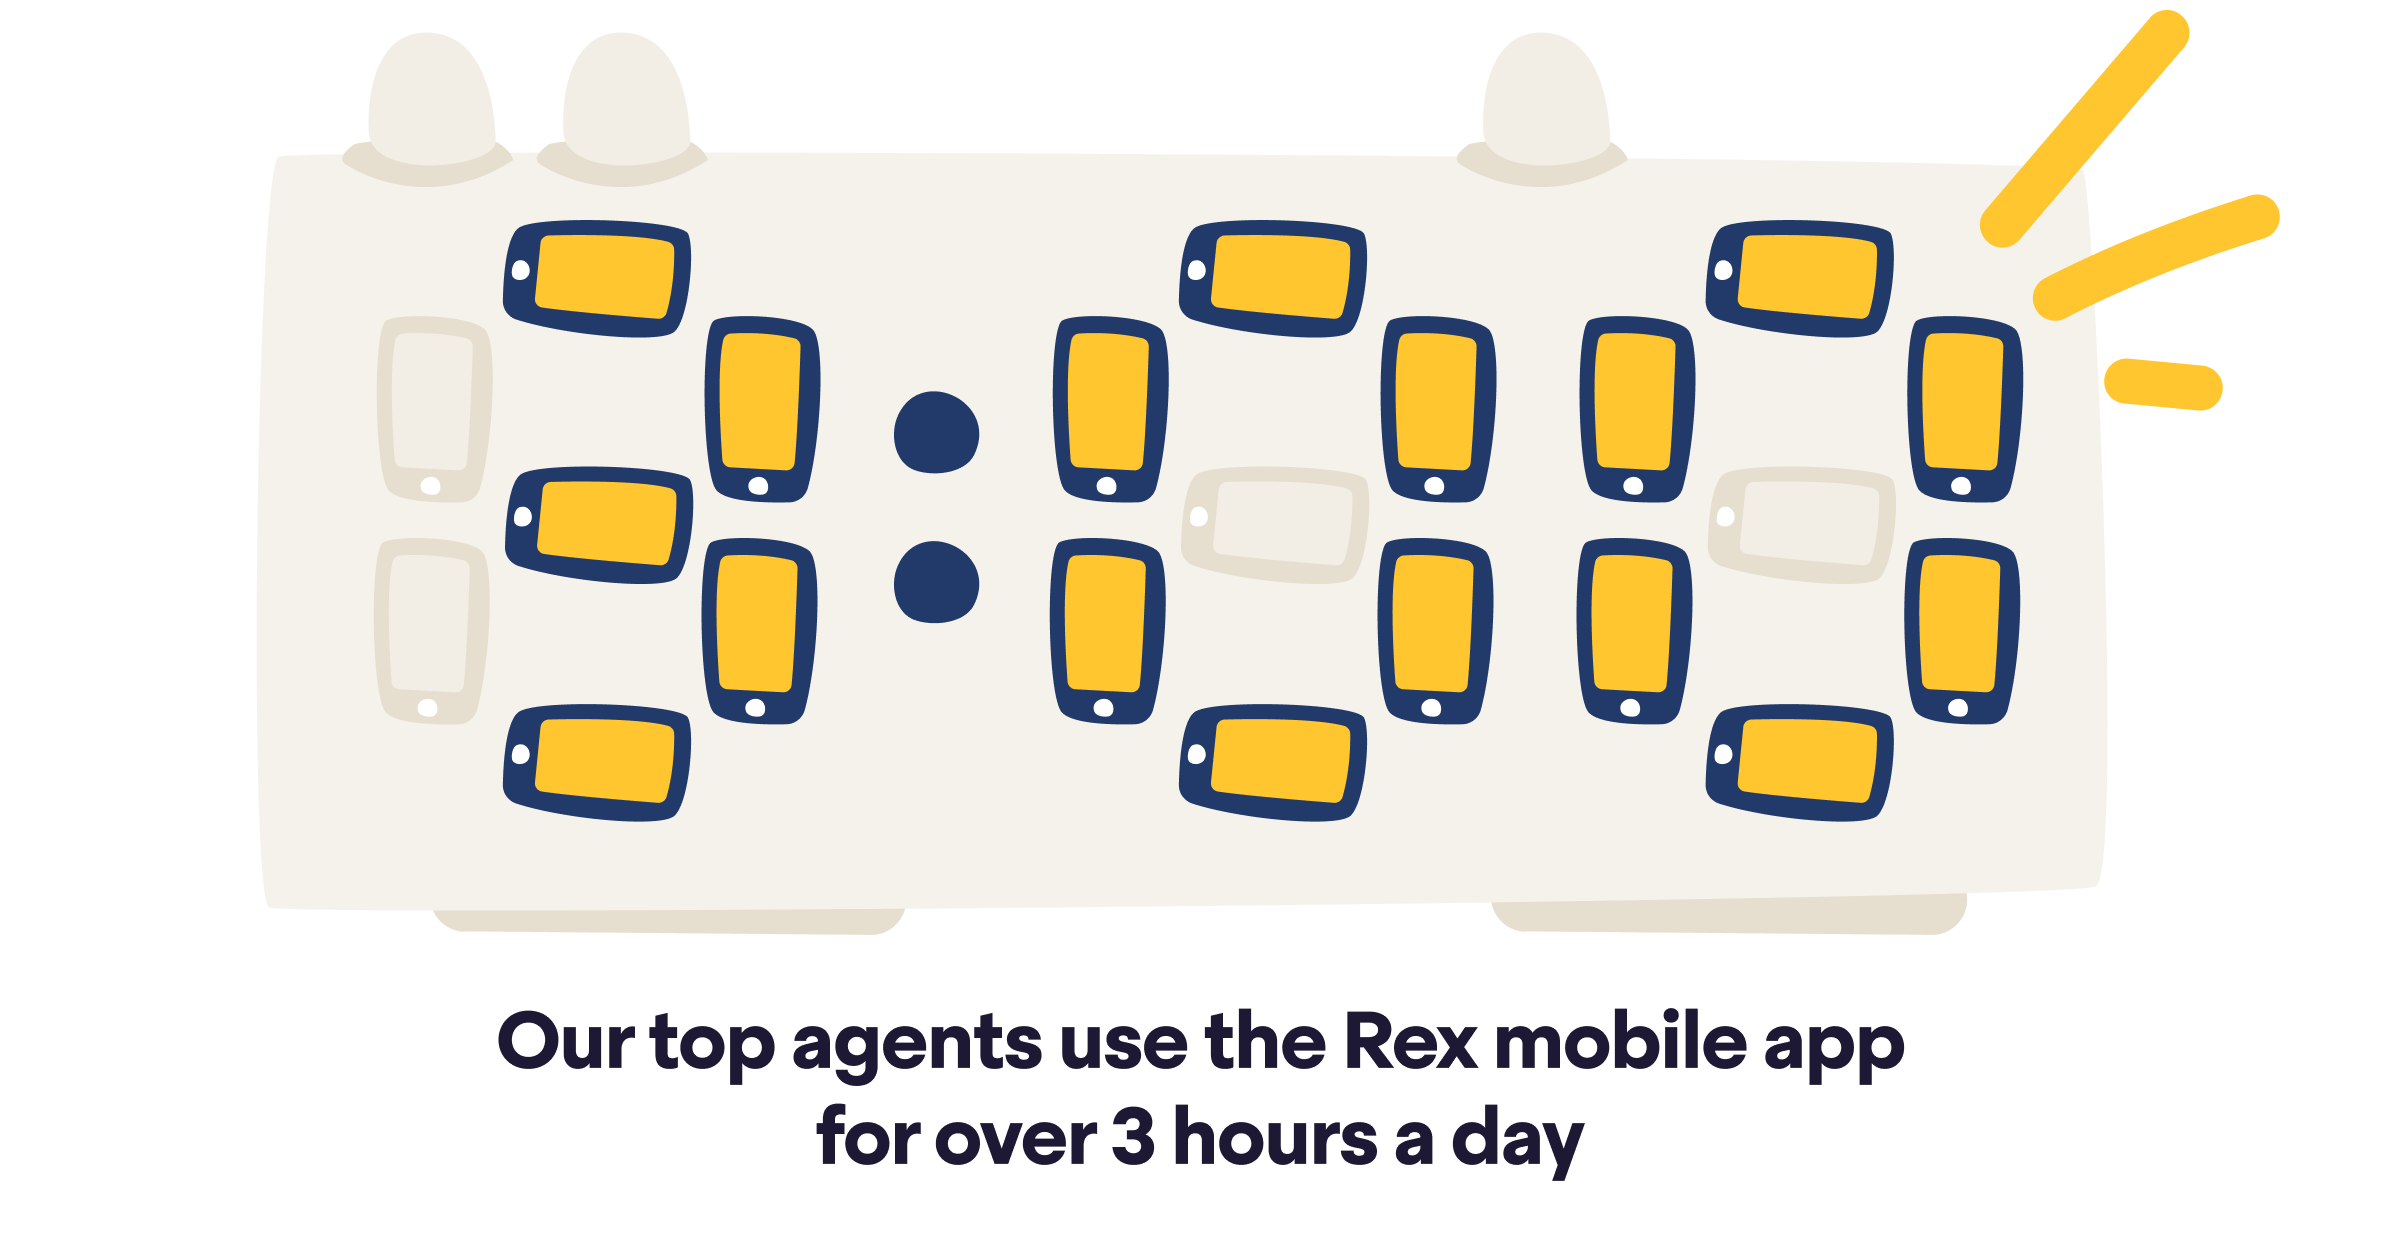 Top agents use the Rex mobile app for 3 hours a day